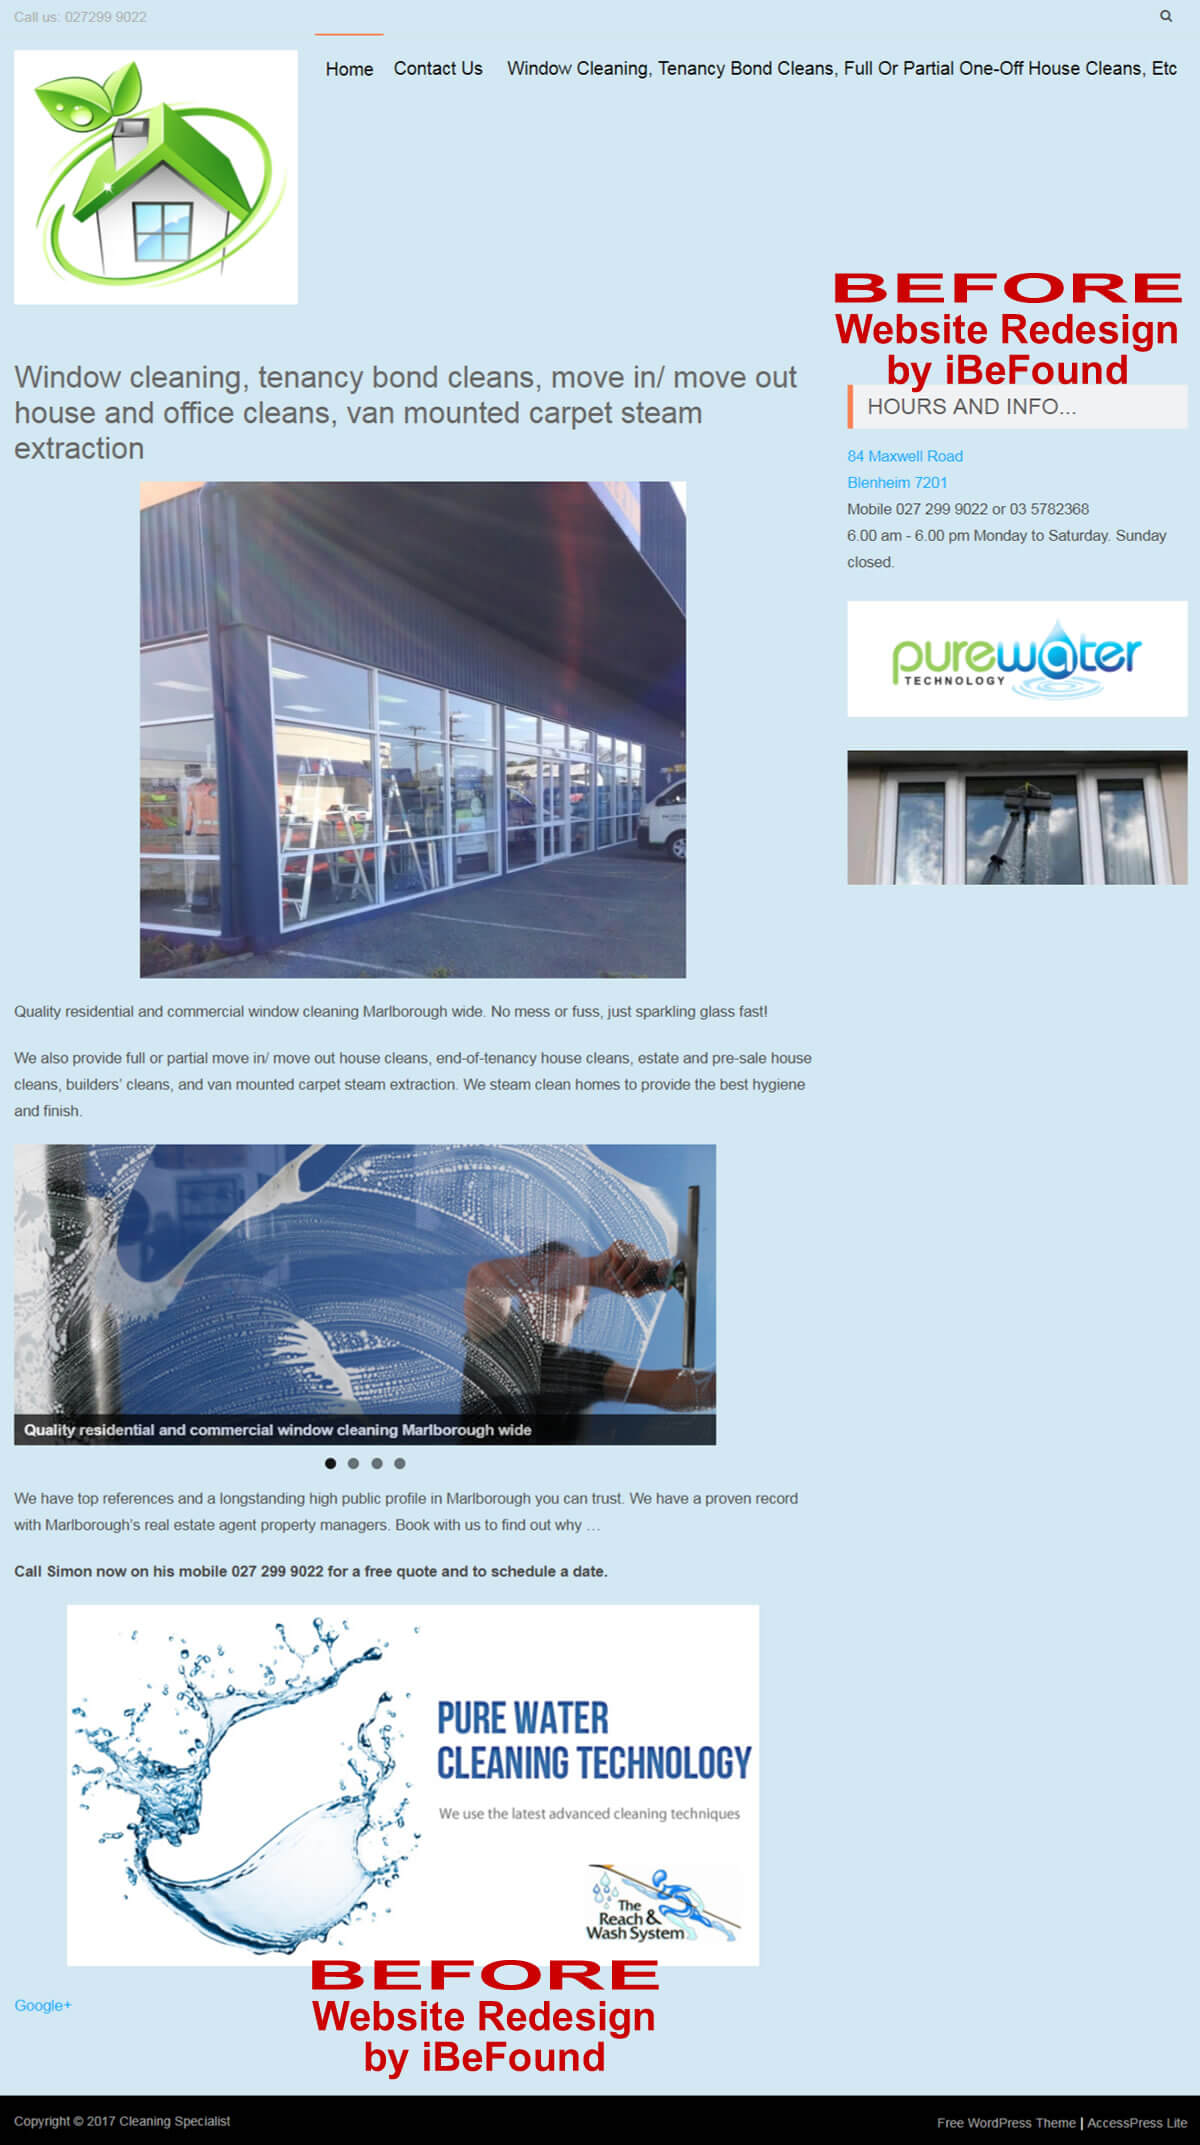 Homepage Of Cleaning Specialist Before Website Redesign By IBeFound